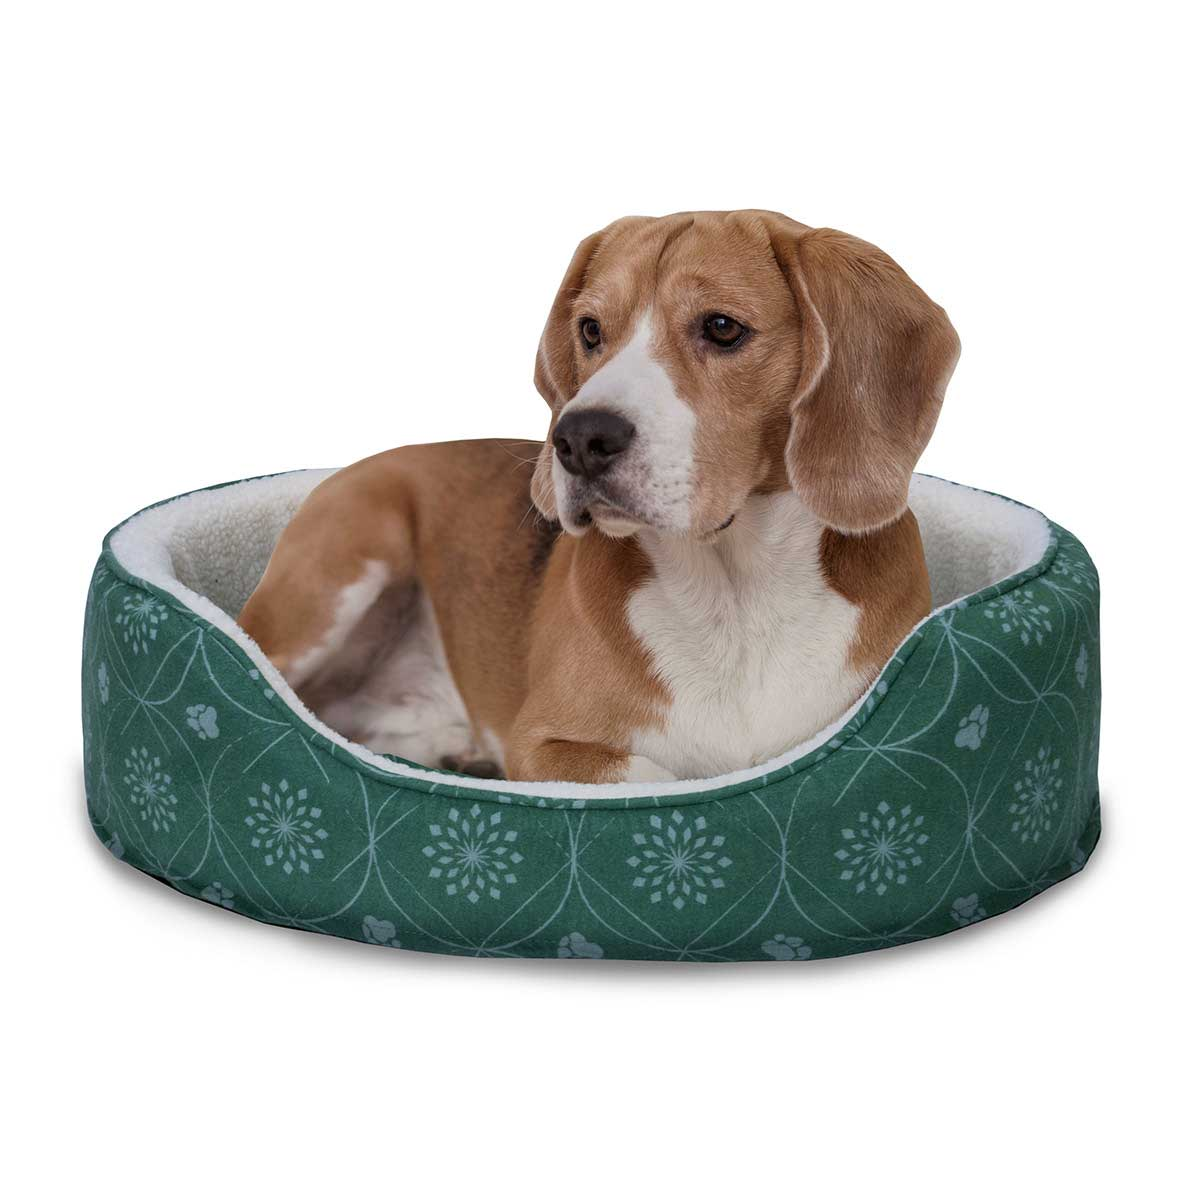 Dog Laying in FurHaven Jade Green Nap Paw Print Decor Flannel Oval Bed - 21 inches by 26 inches